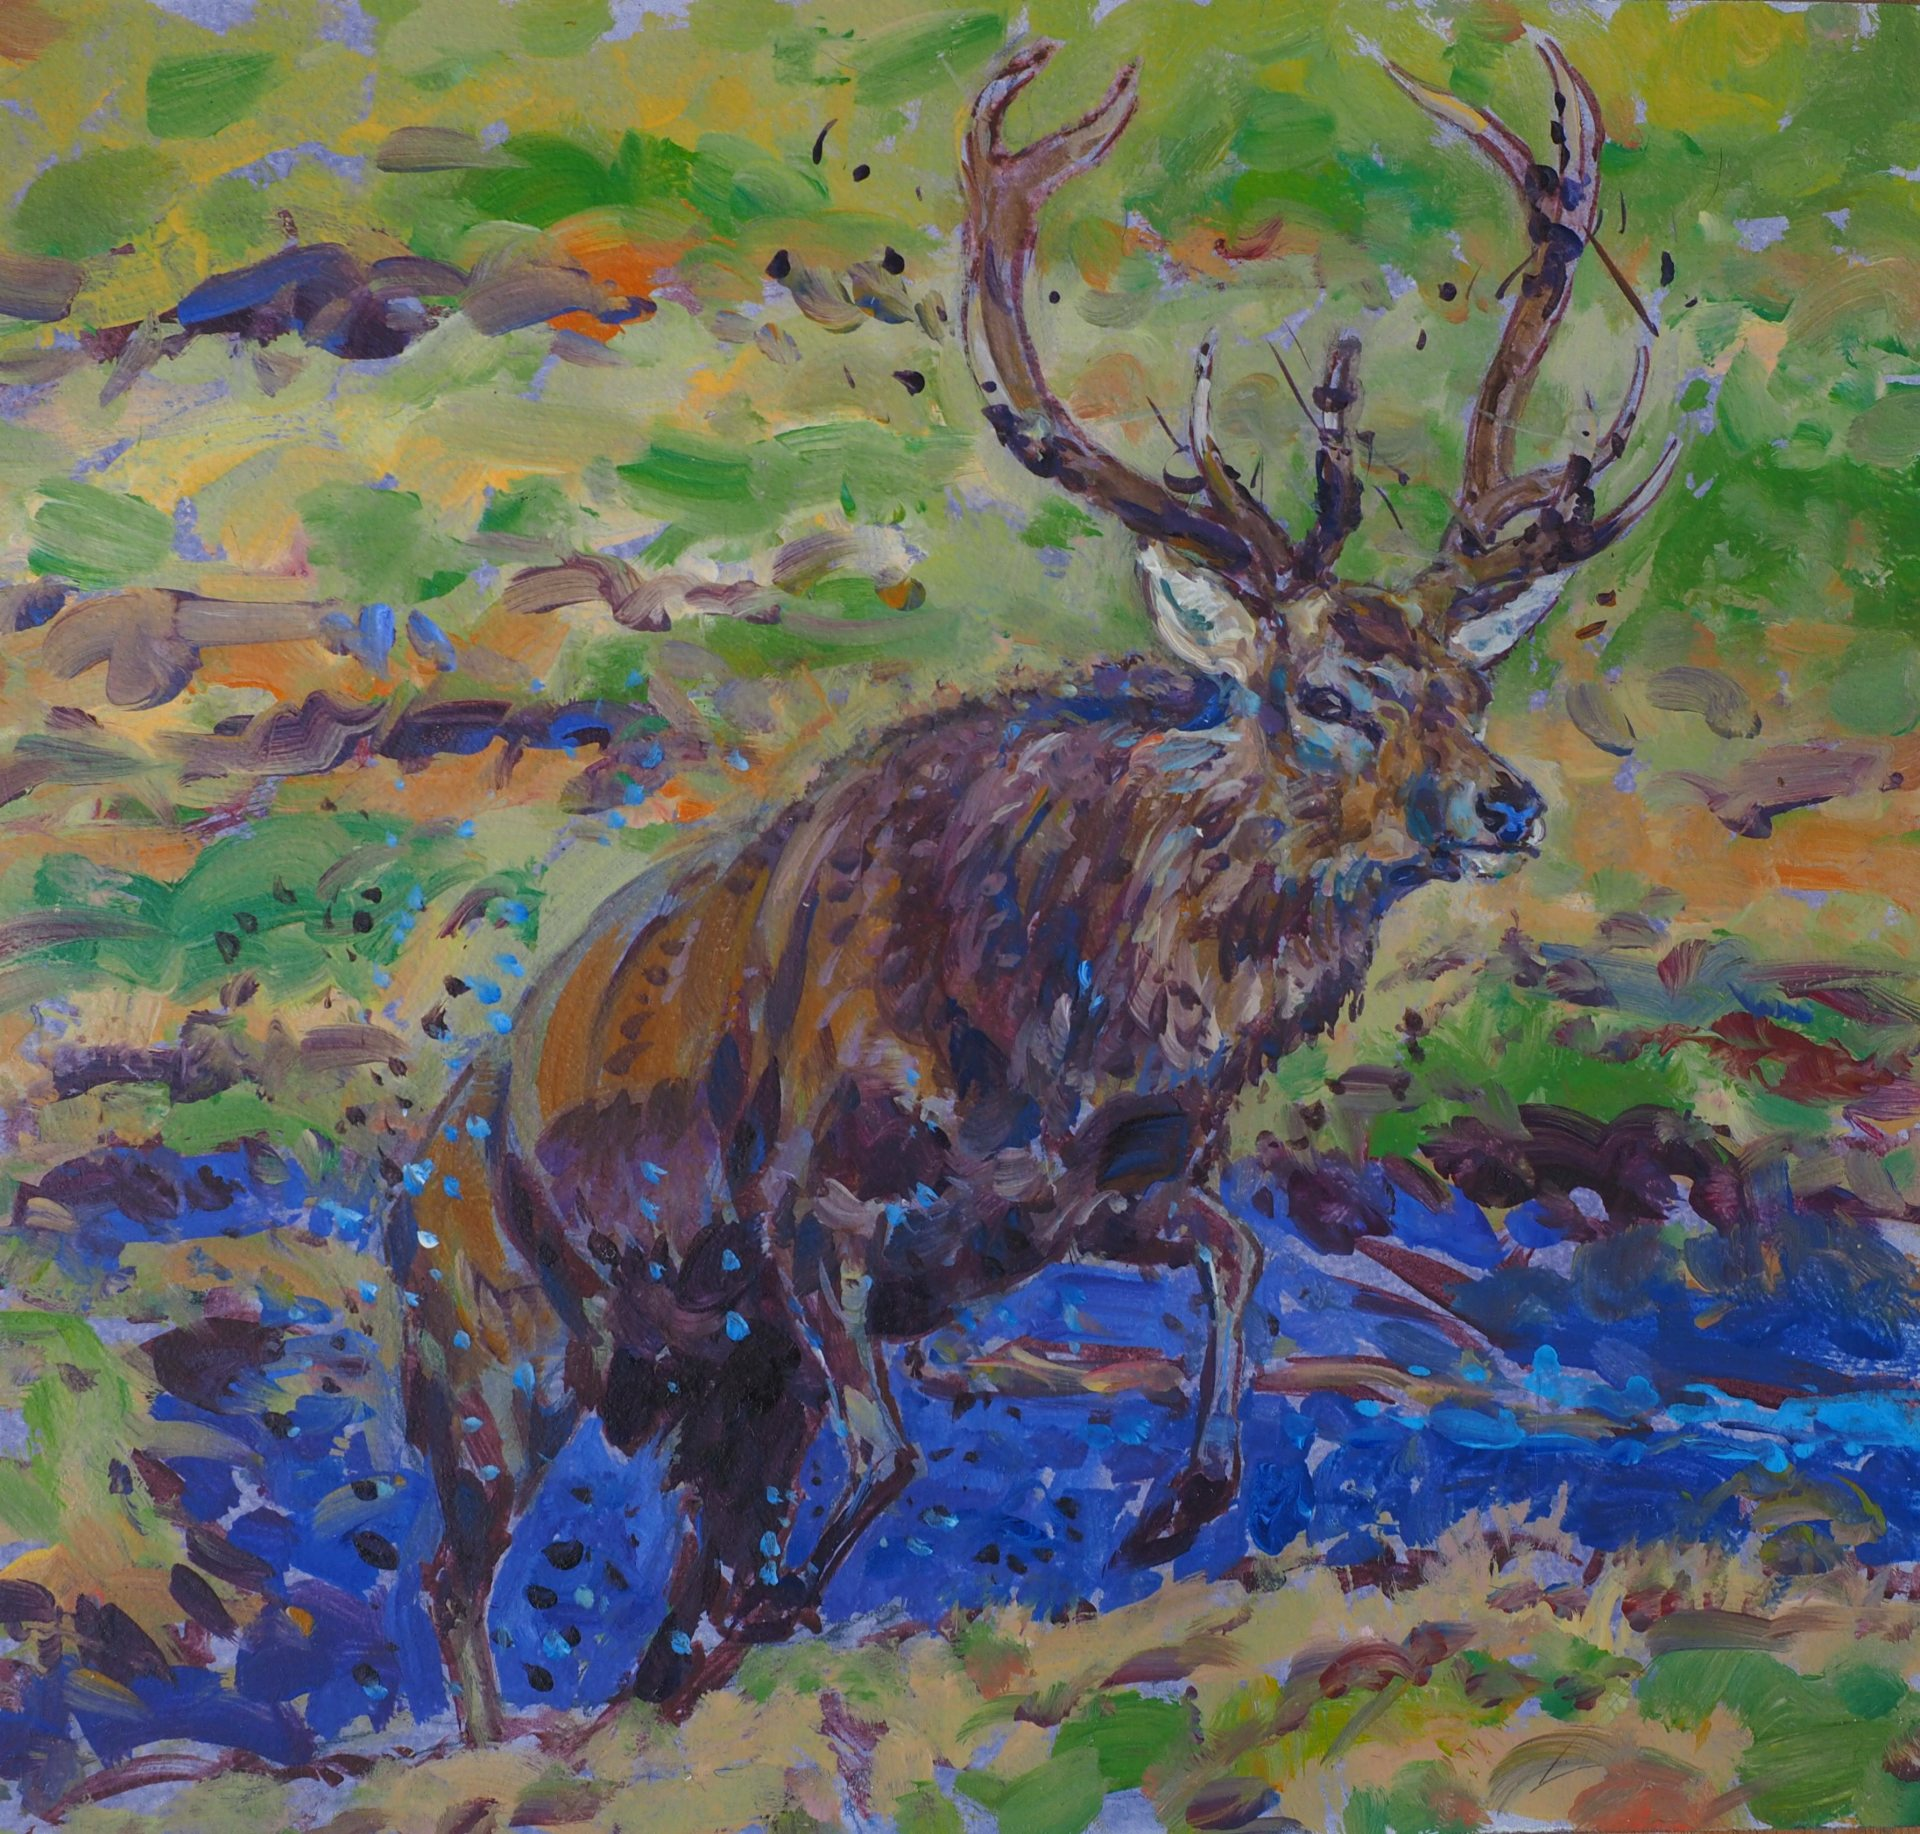 Red Stag emerging from a Wallow